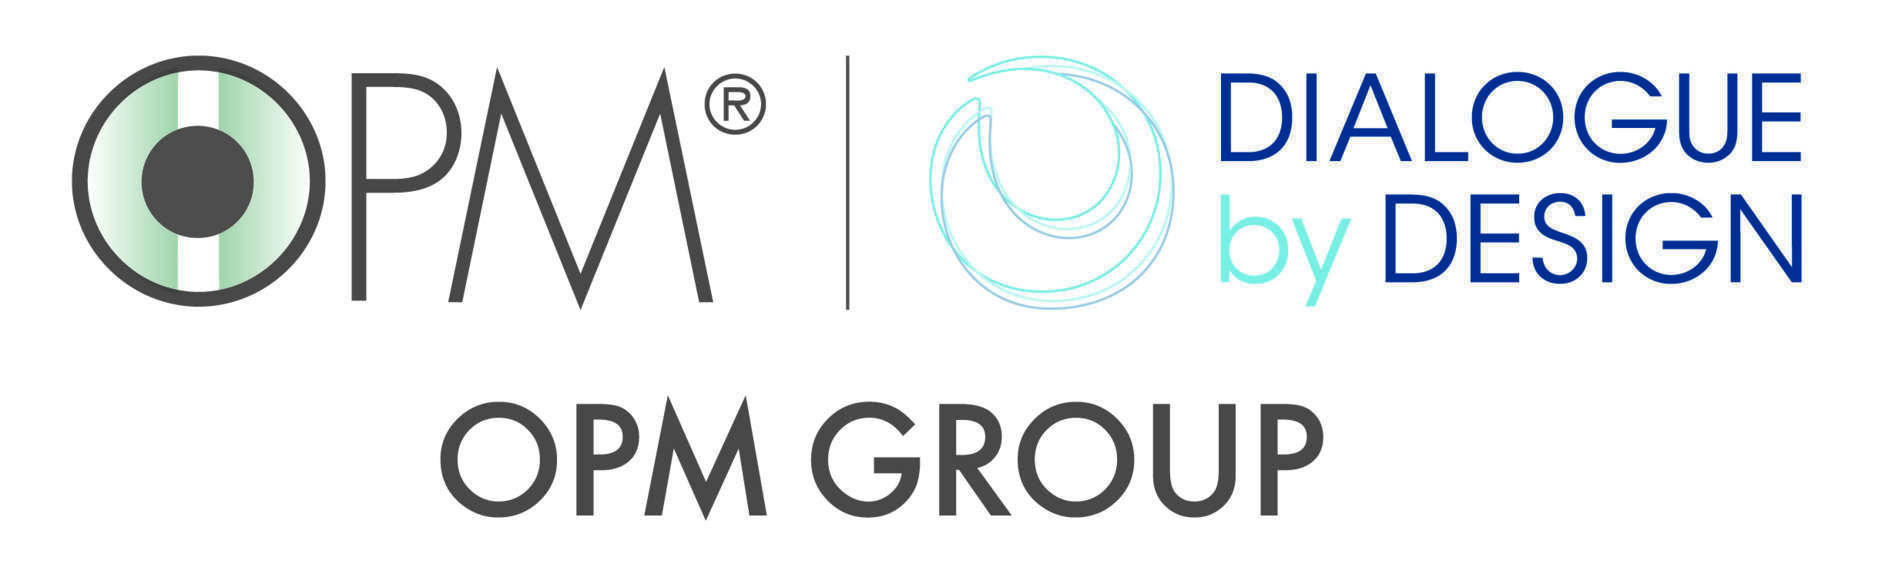 OPM_Group_Logo_Large.jpg